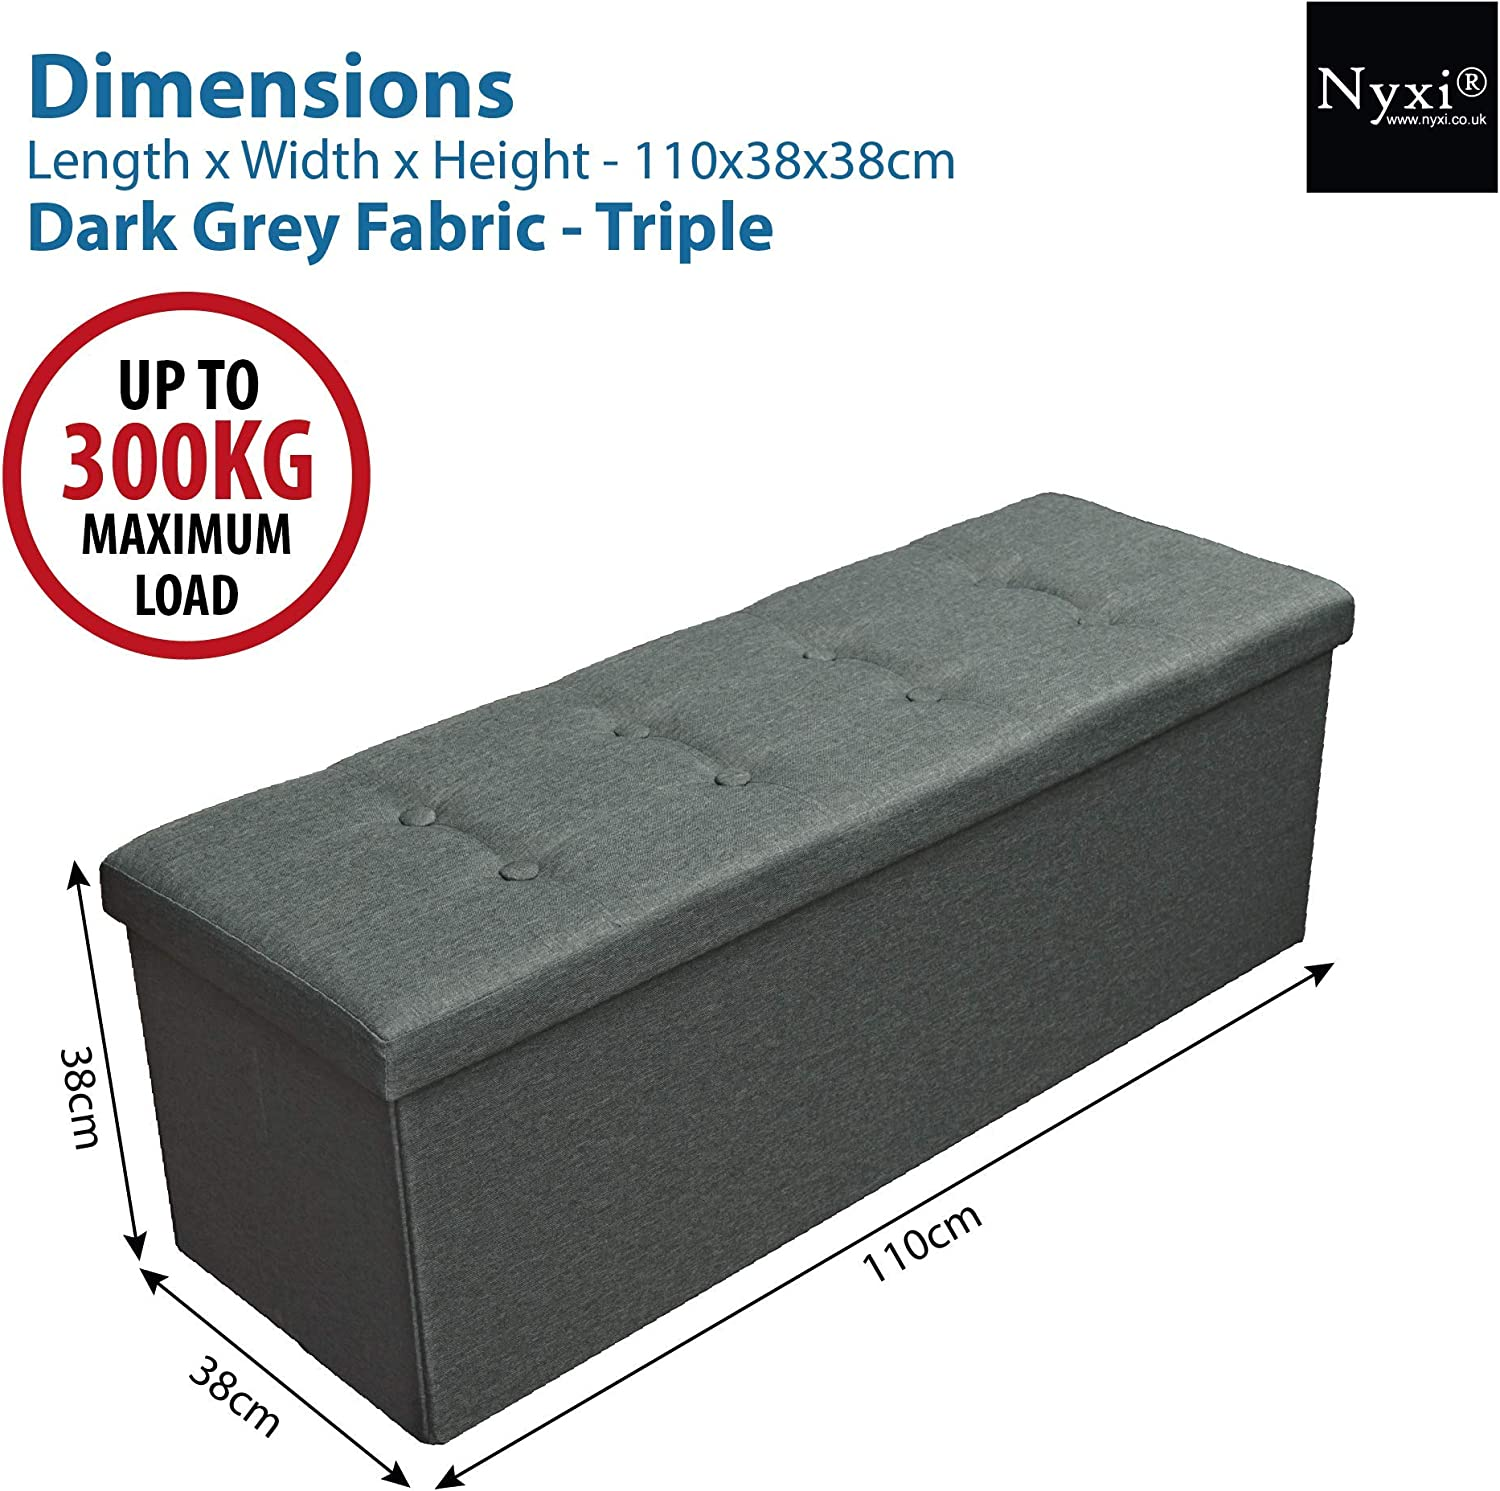 Living Room Gray Hallway Bedroom 110 * 38 * 38cm King Nyxi Ottoman Foldable Storage Boxes Seat Foot Stool Storage Box with Lids for Kids Toys